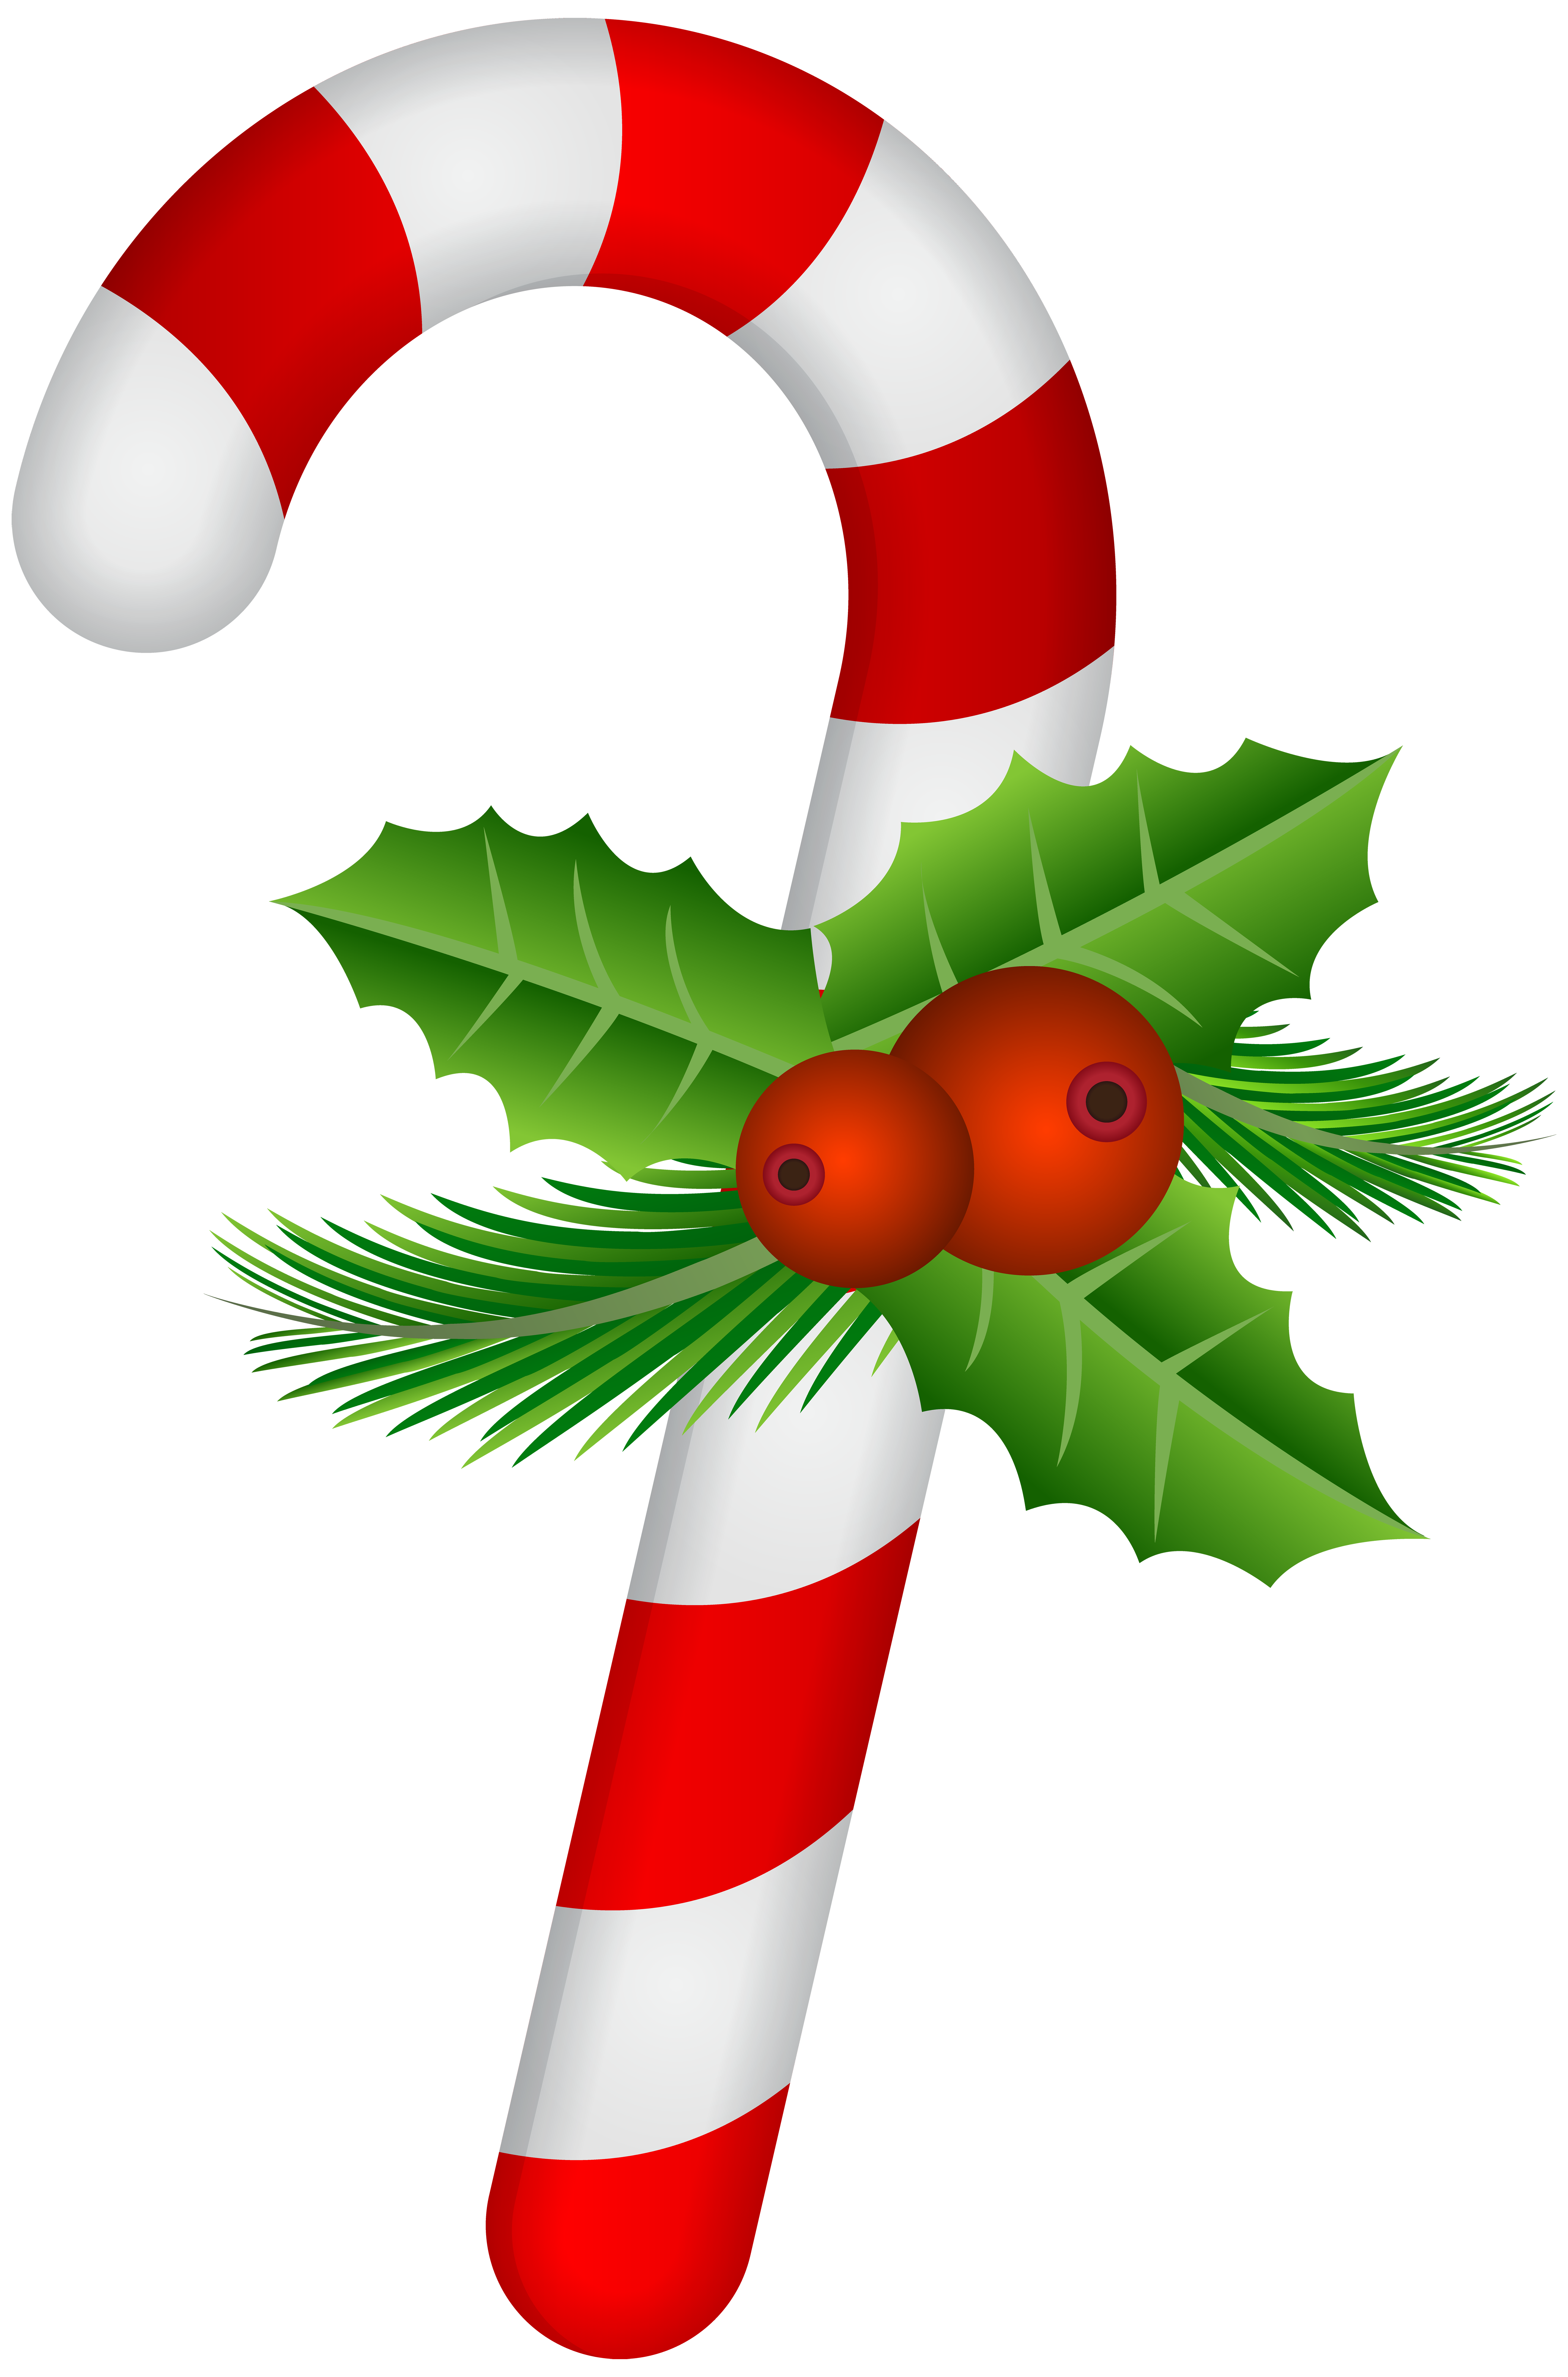 Movies clipart candy. Cane with holly transparent